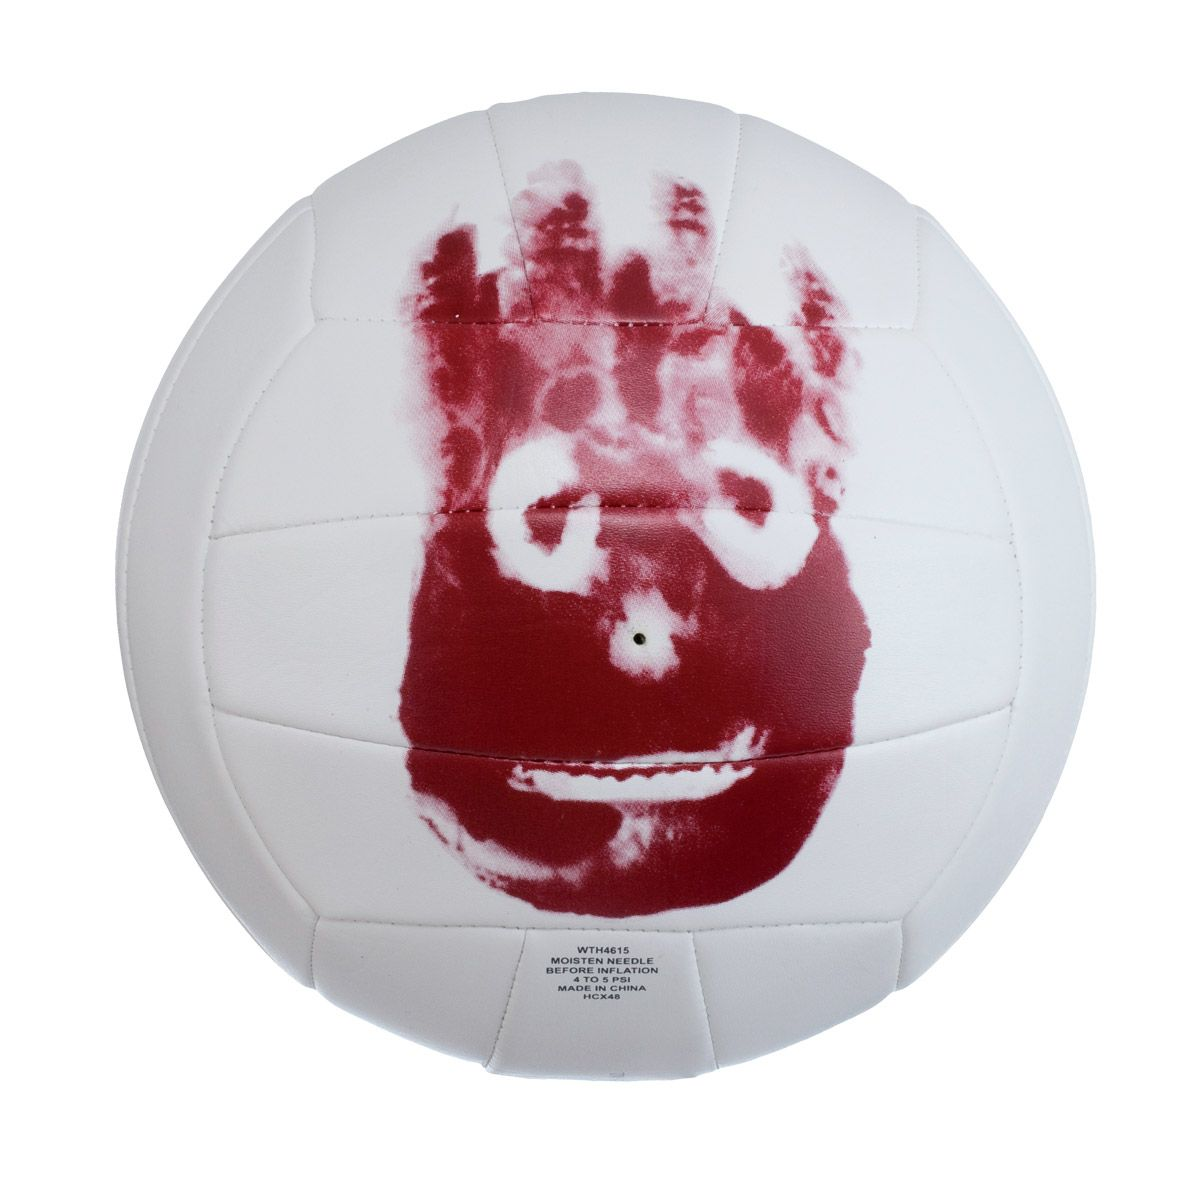 Wilson Cast Away Volleyball Wilson Volleyball Volleyballs Wilson Castaway